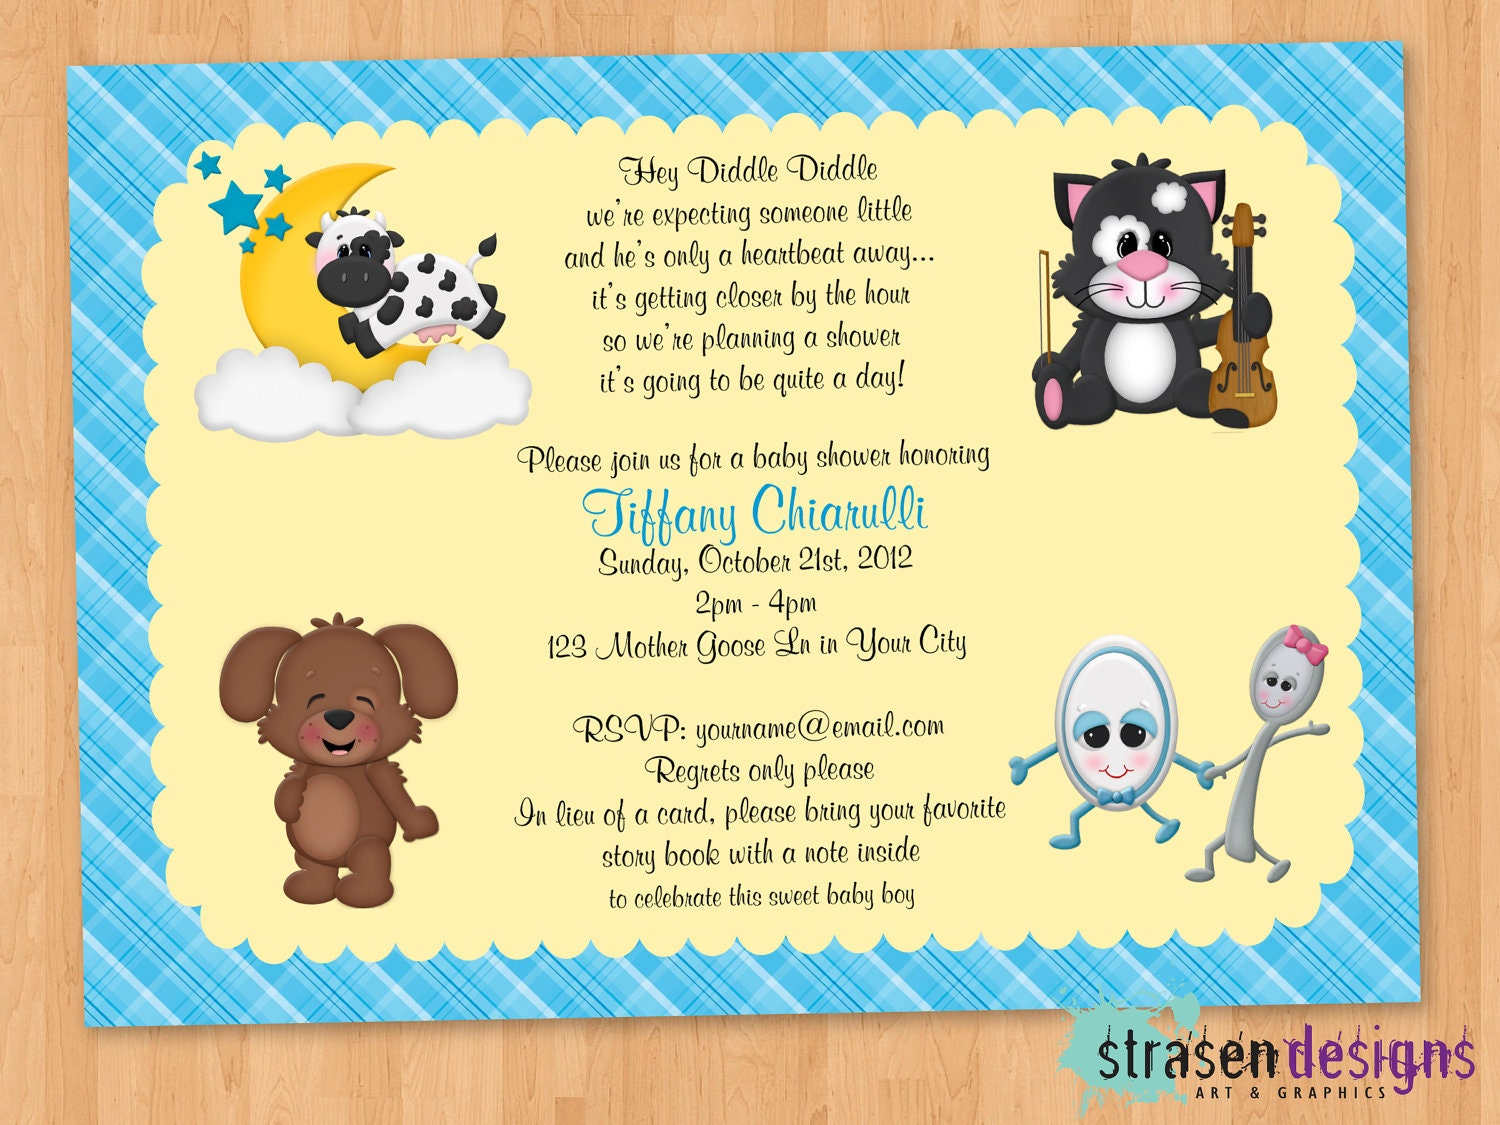 Nursery Rhyme Hey Diddle Diddle Baby Shower Invitation